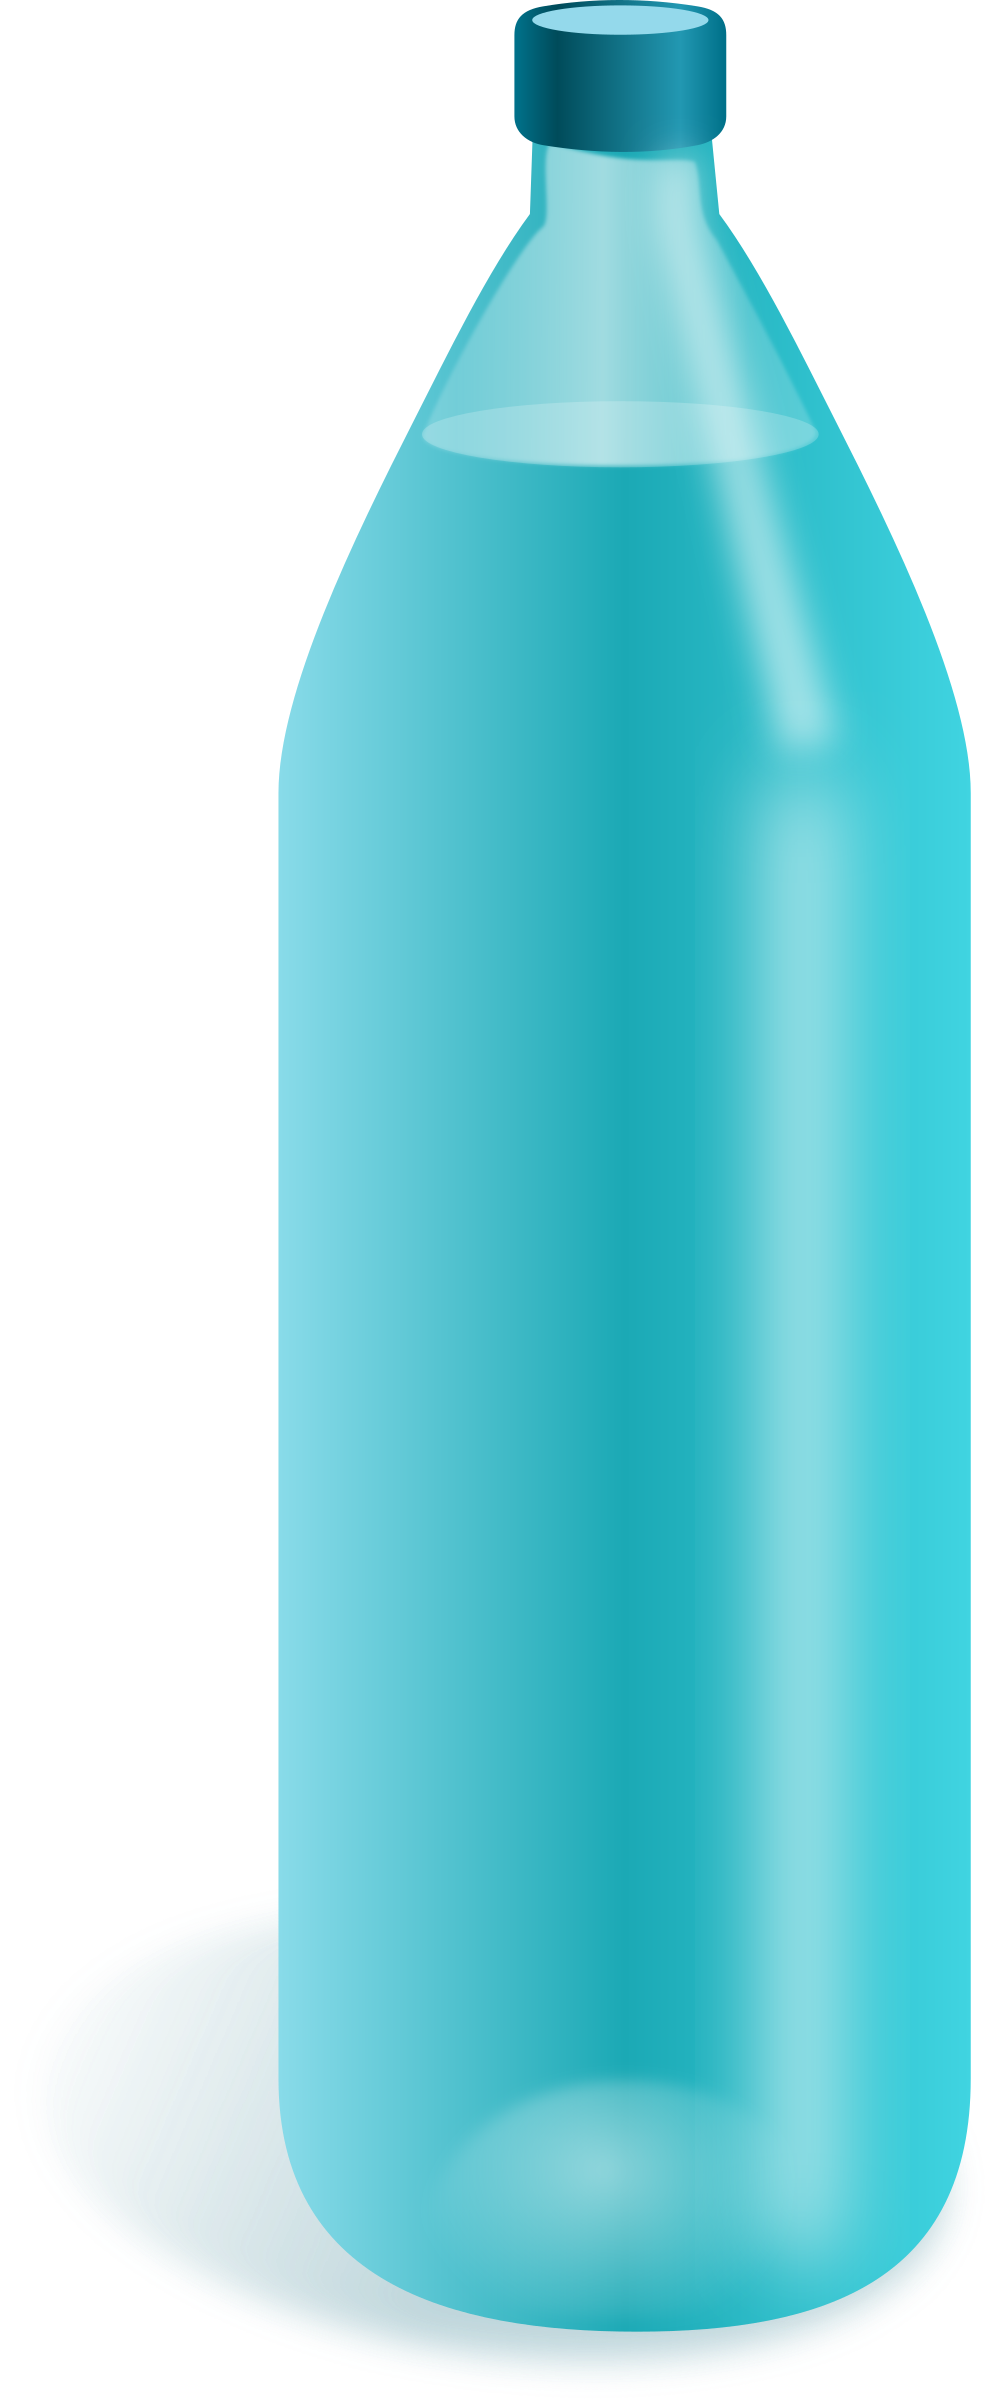 Water png image . Bottle clipart transparent background